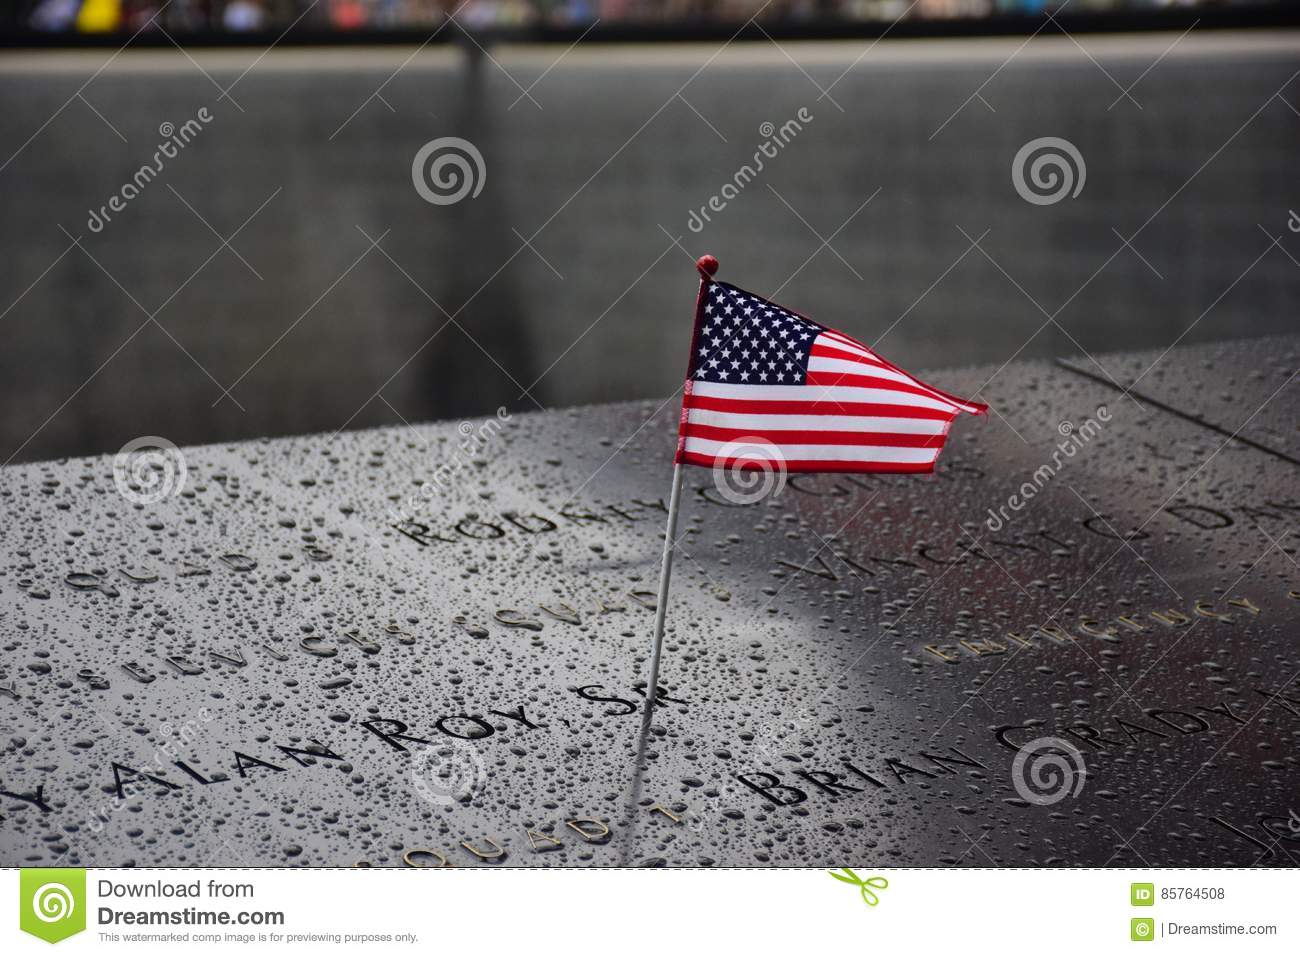 Memorial at Ground Zero Manhattan for September 11 Terrorist Attack with an American Flag Standing near the Names of Victims Engra